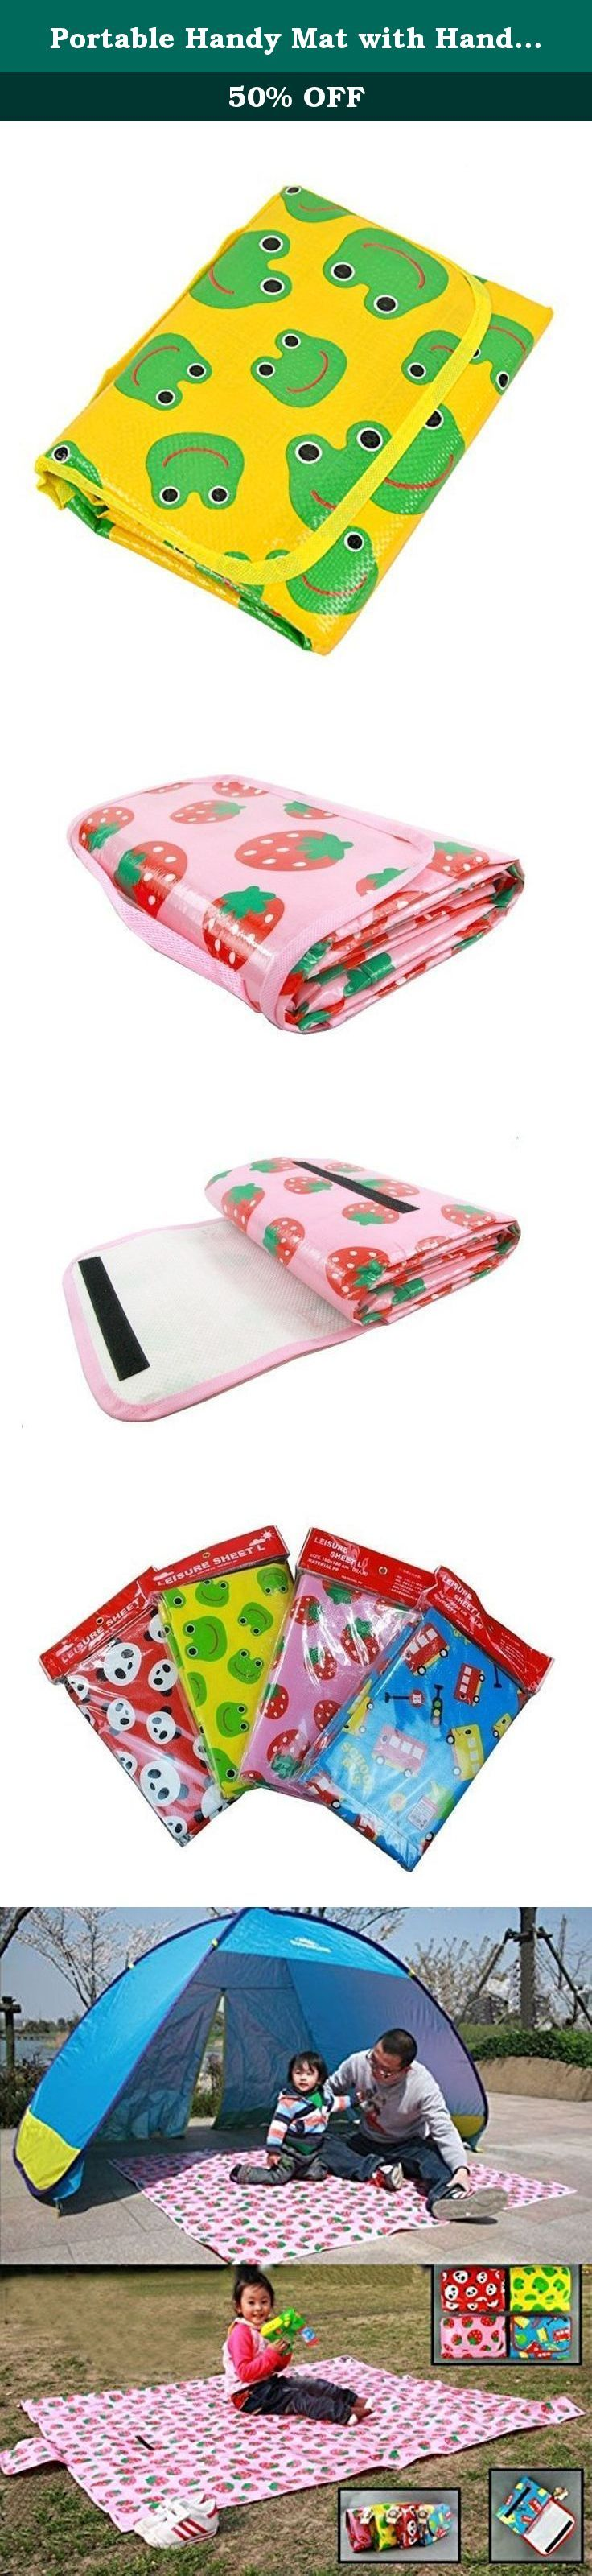 """Portable Handy Mat with Handle for Beach, Picnic, Camping, or Any Outdoor Activities Extra Large Measures 70.2"""" x 62.4"""". Size: 180 x 160cm / 70.2"""""""" x 62.4"""""""" Miti Size: 200 x 160cm (L X W), 0.5-0.7cm (Thickness) For a four-person household Pattern: Panda/Strawberry/Car Surface water treatment, wipe clean very convenient Foldable bag with hand-carry design, easy to carry Spring, but also to the outing with a baby, to the park, beach, green spaces, on the outskirts, you have a great need for..."""